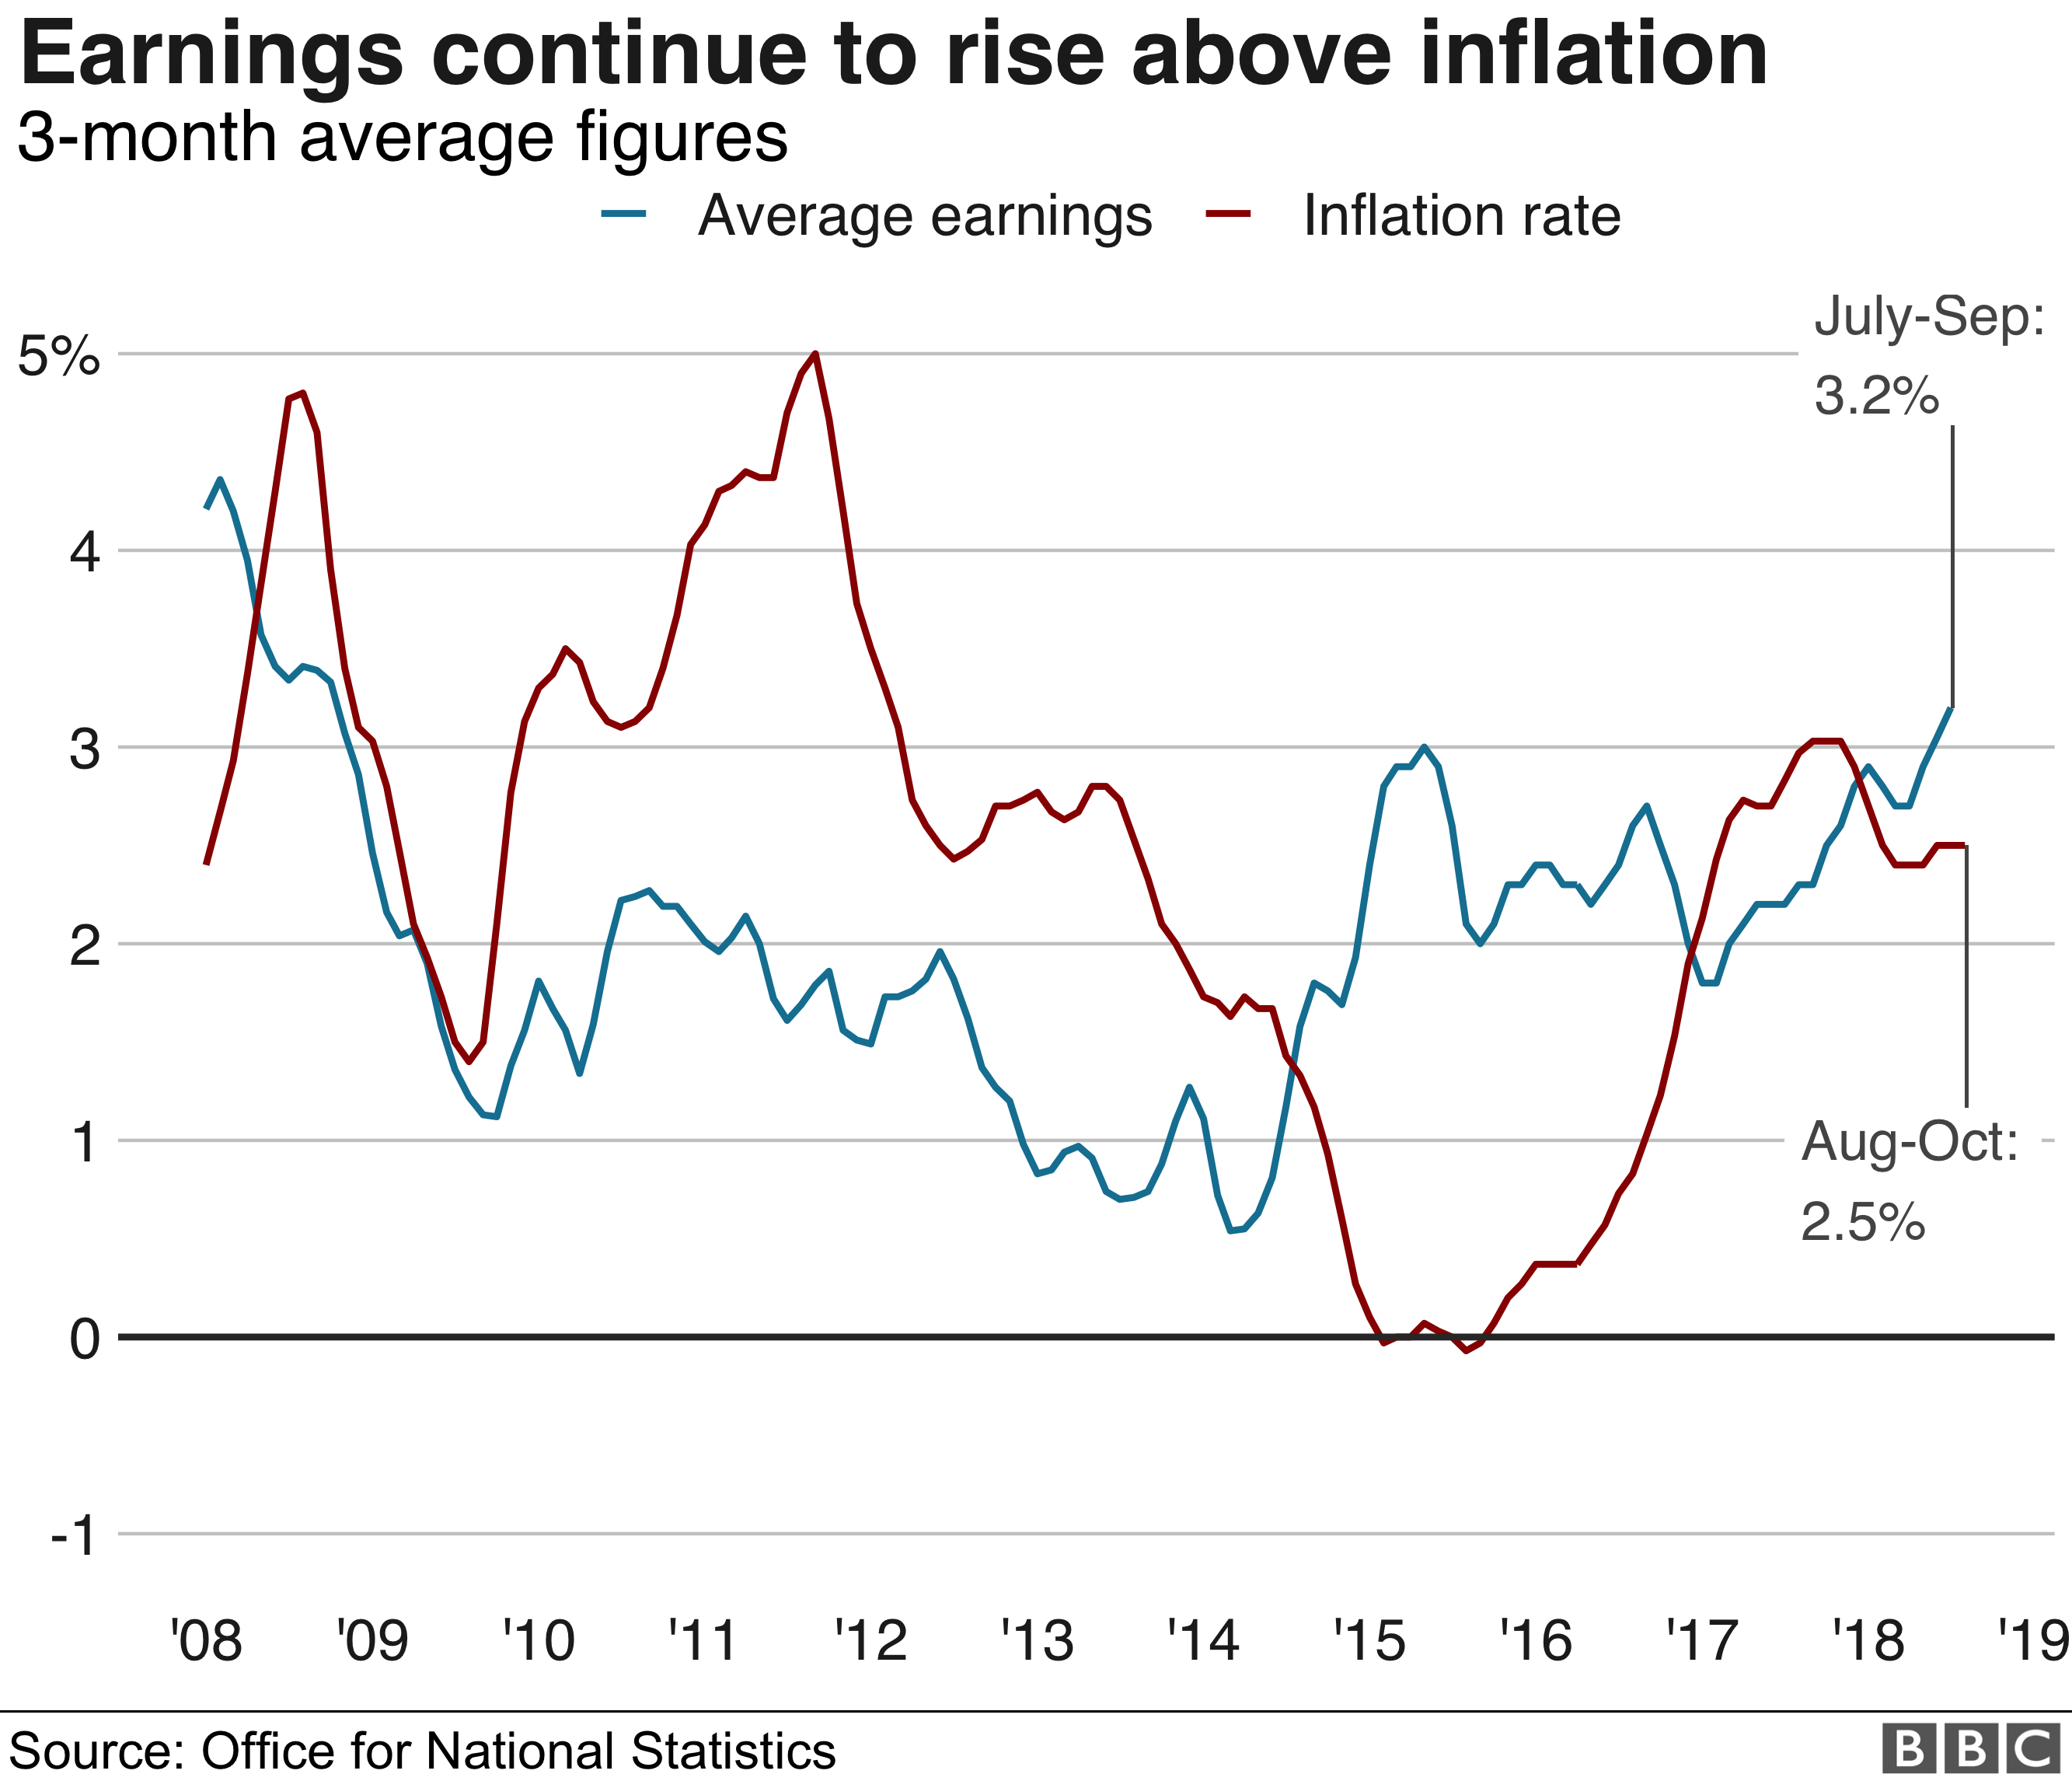 Earnings and inflation